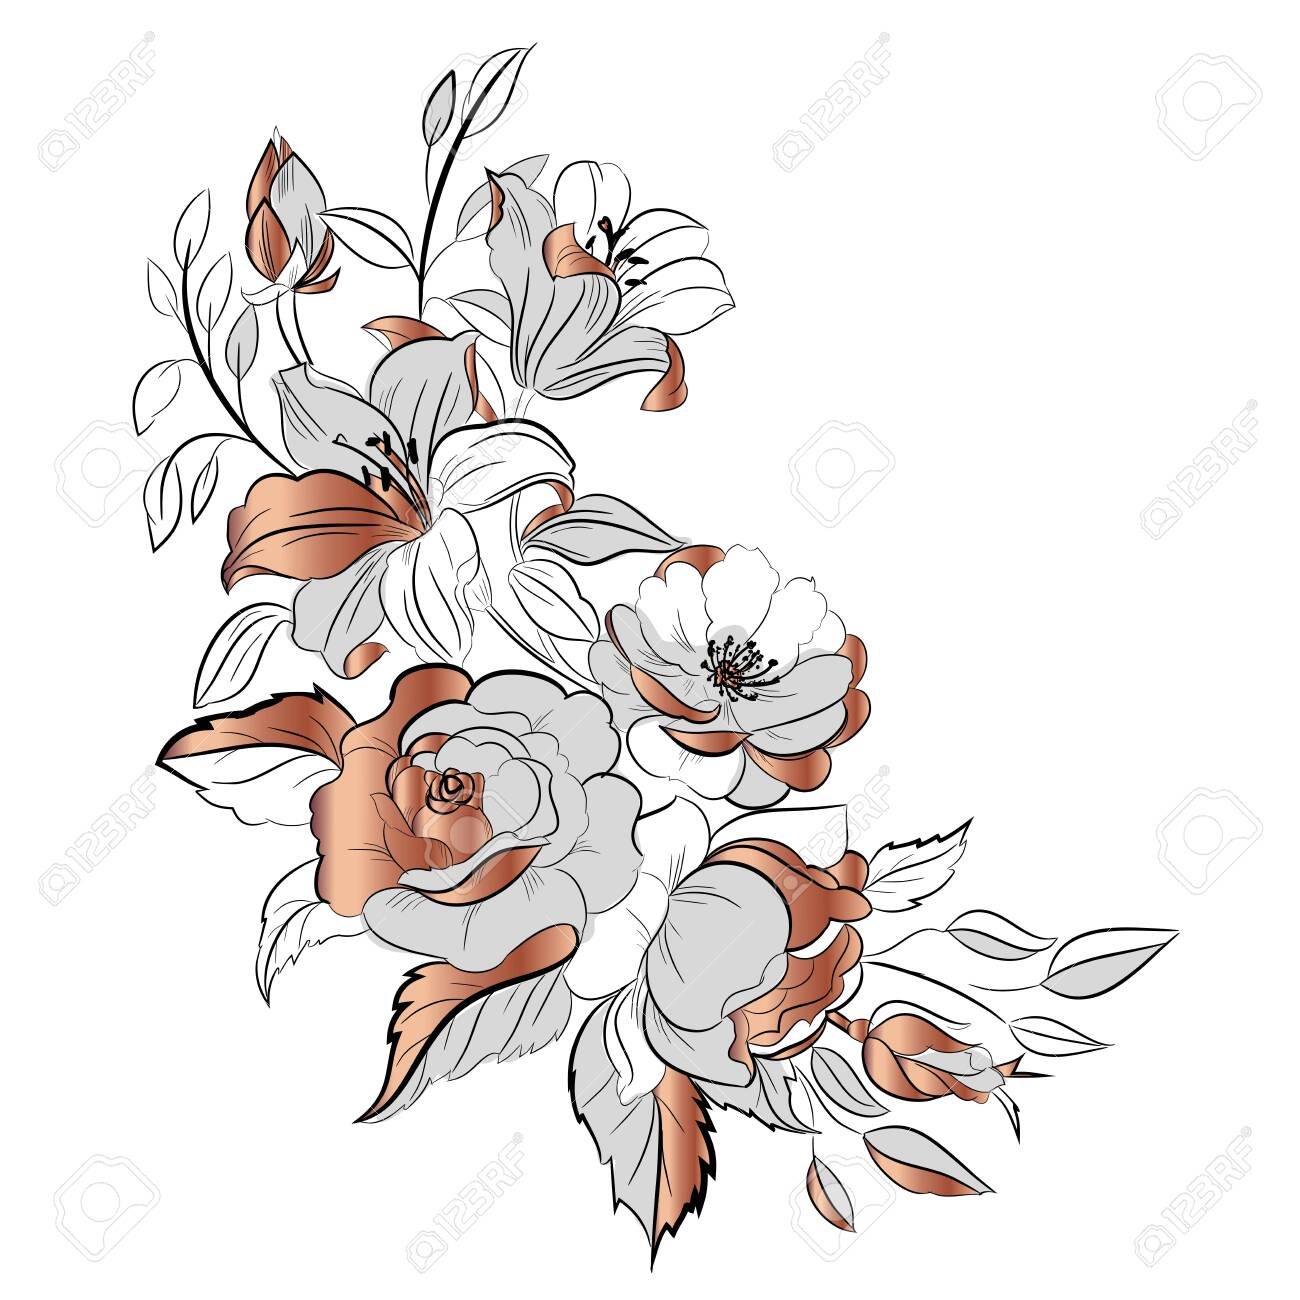 Bouquet Of Flowers Drawn Ink And Rose Gold Figure Black Lines Royalty Free Cliparts Vectors And Stock Illustration Image 146196338